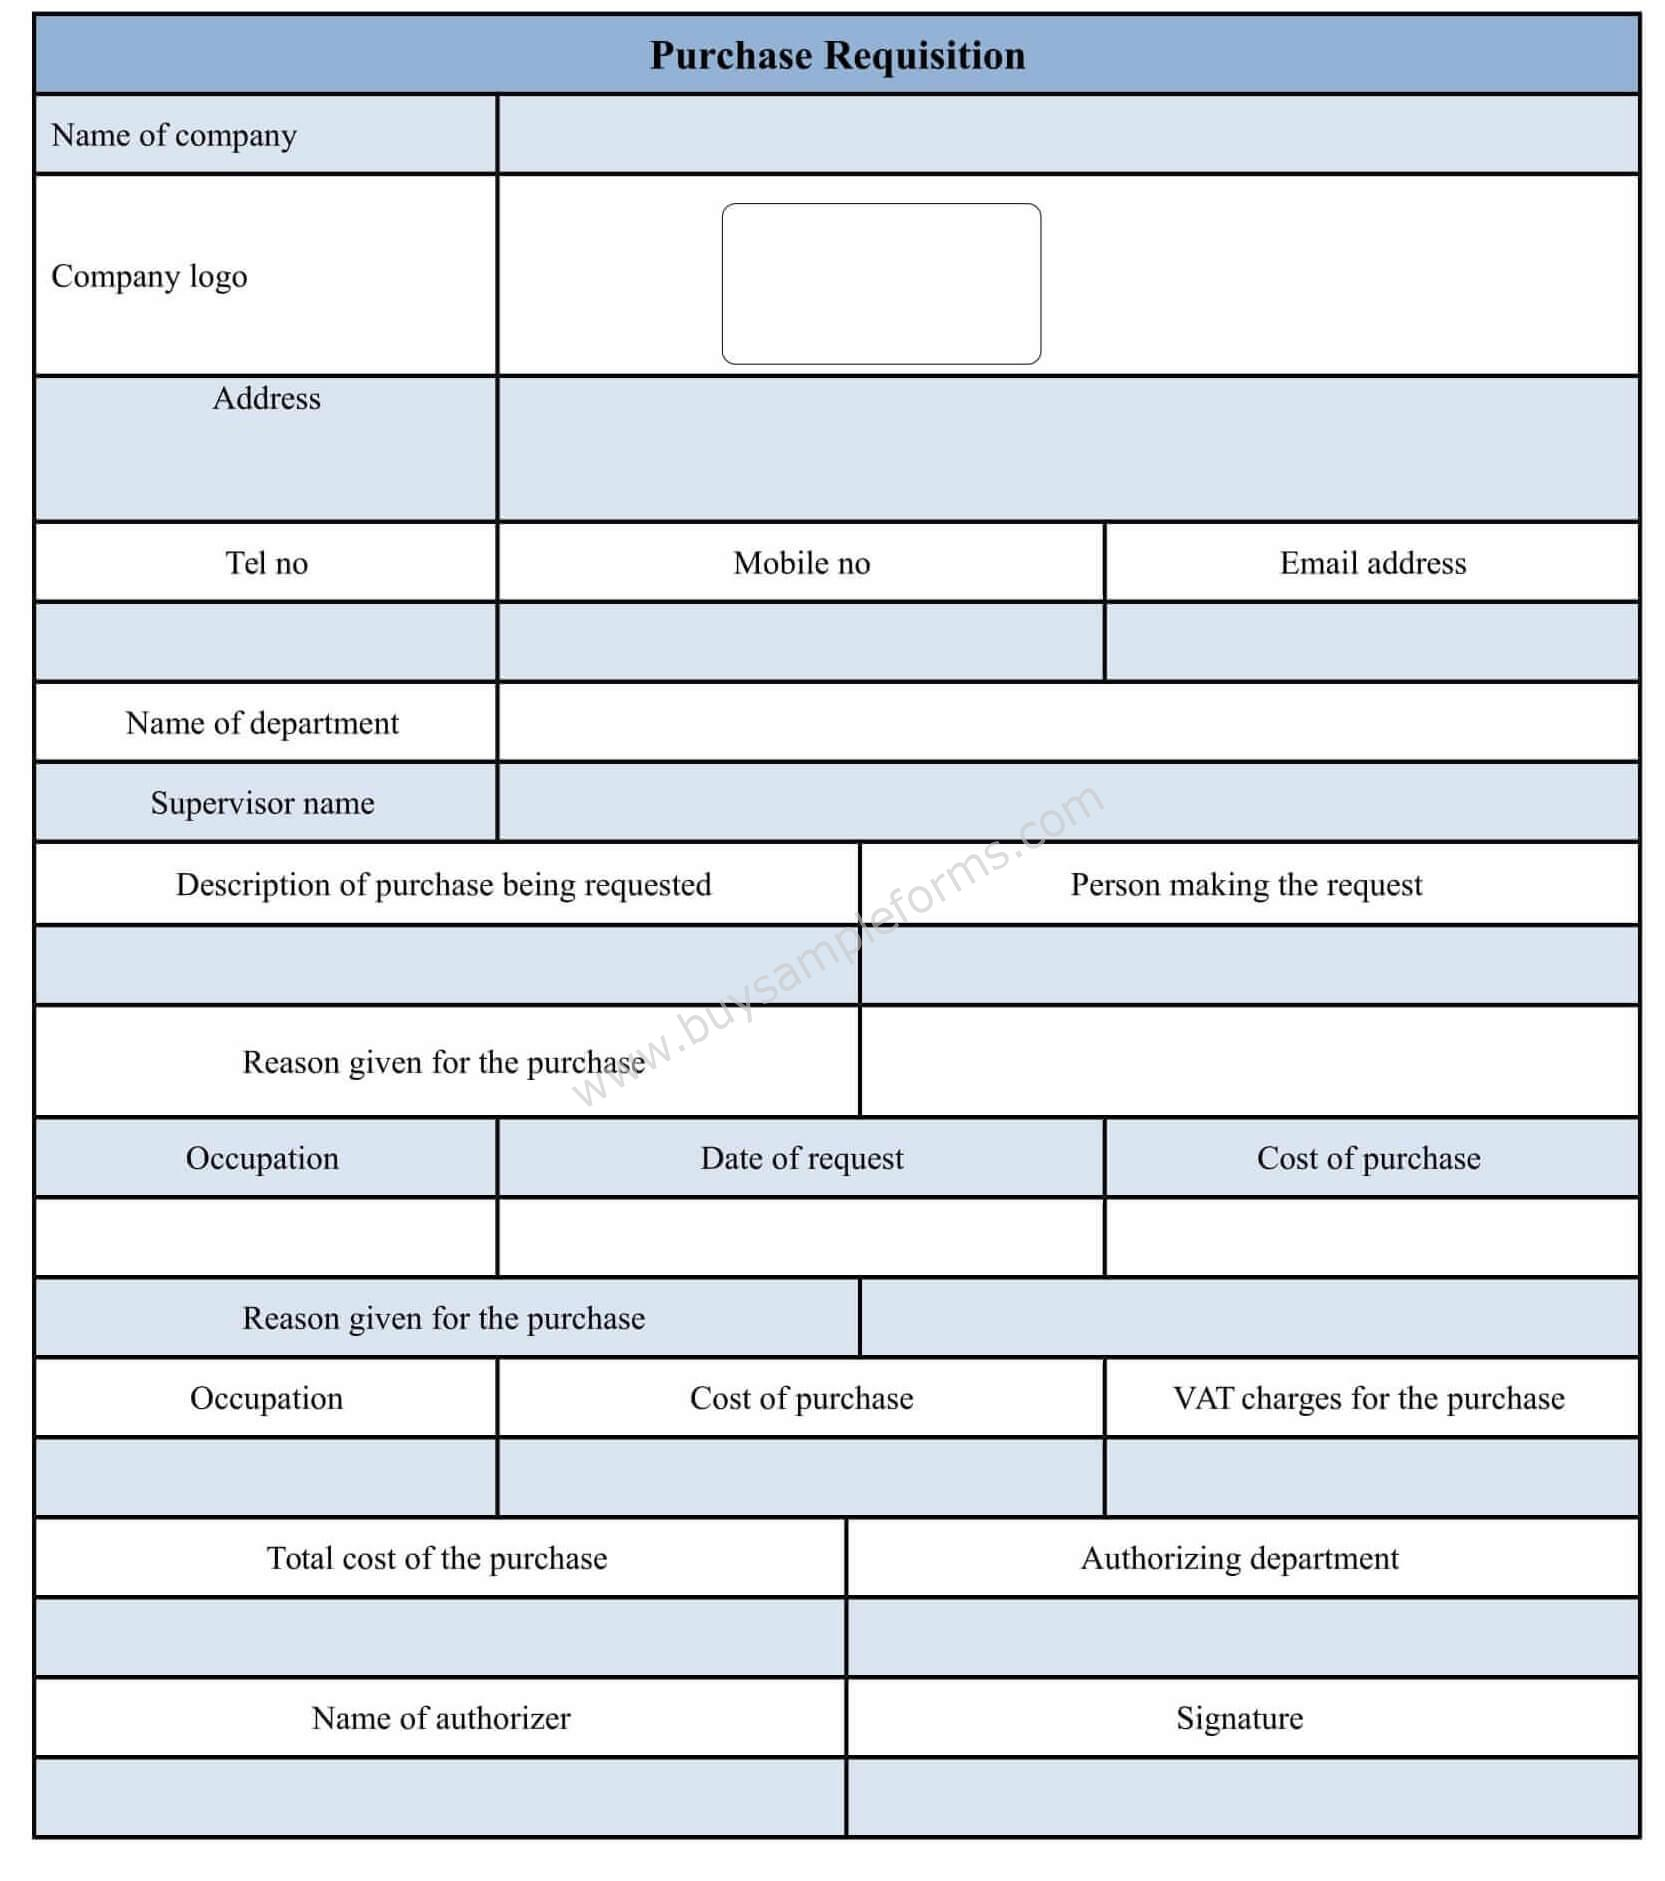 Purchase requisition form template doc for It purchase request form template